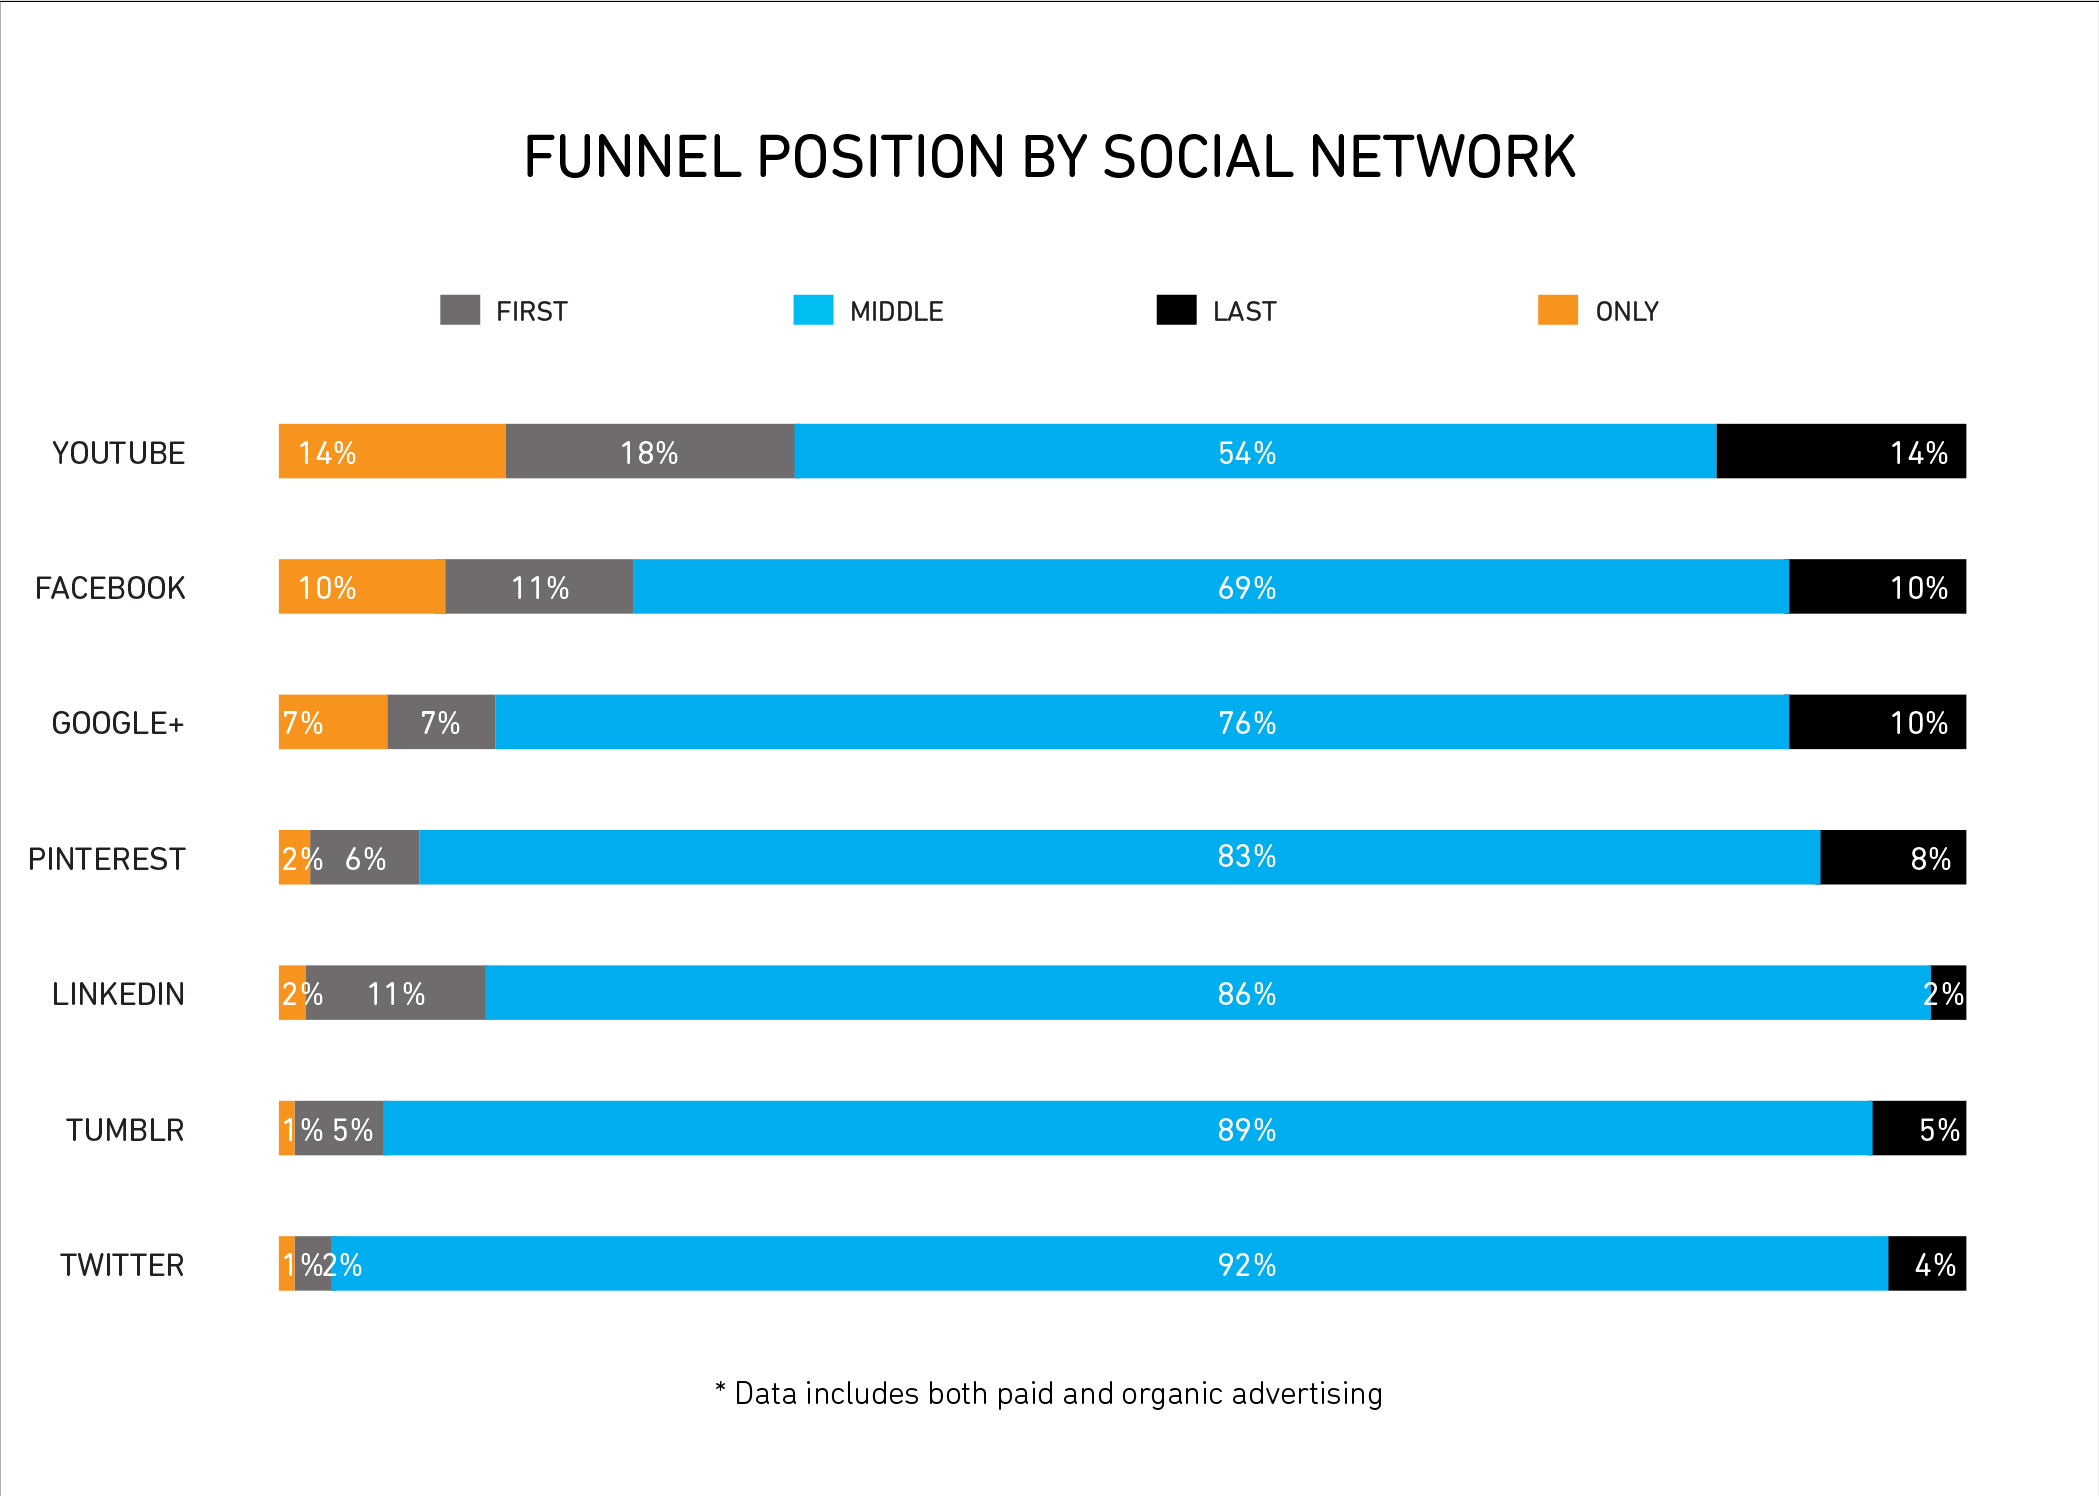 Funnel Position by Social Network graph, youtube drives more sales